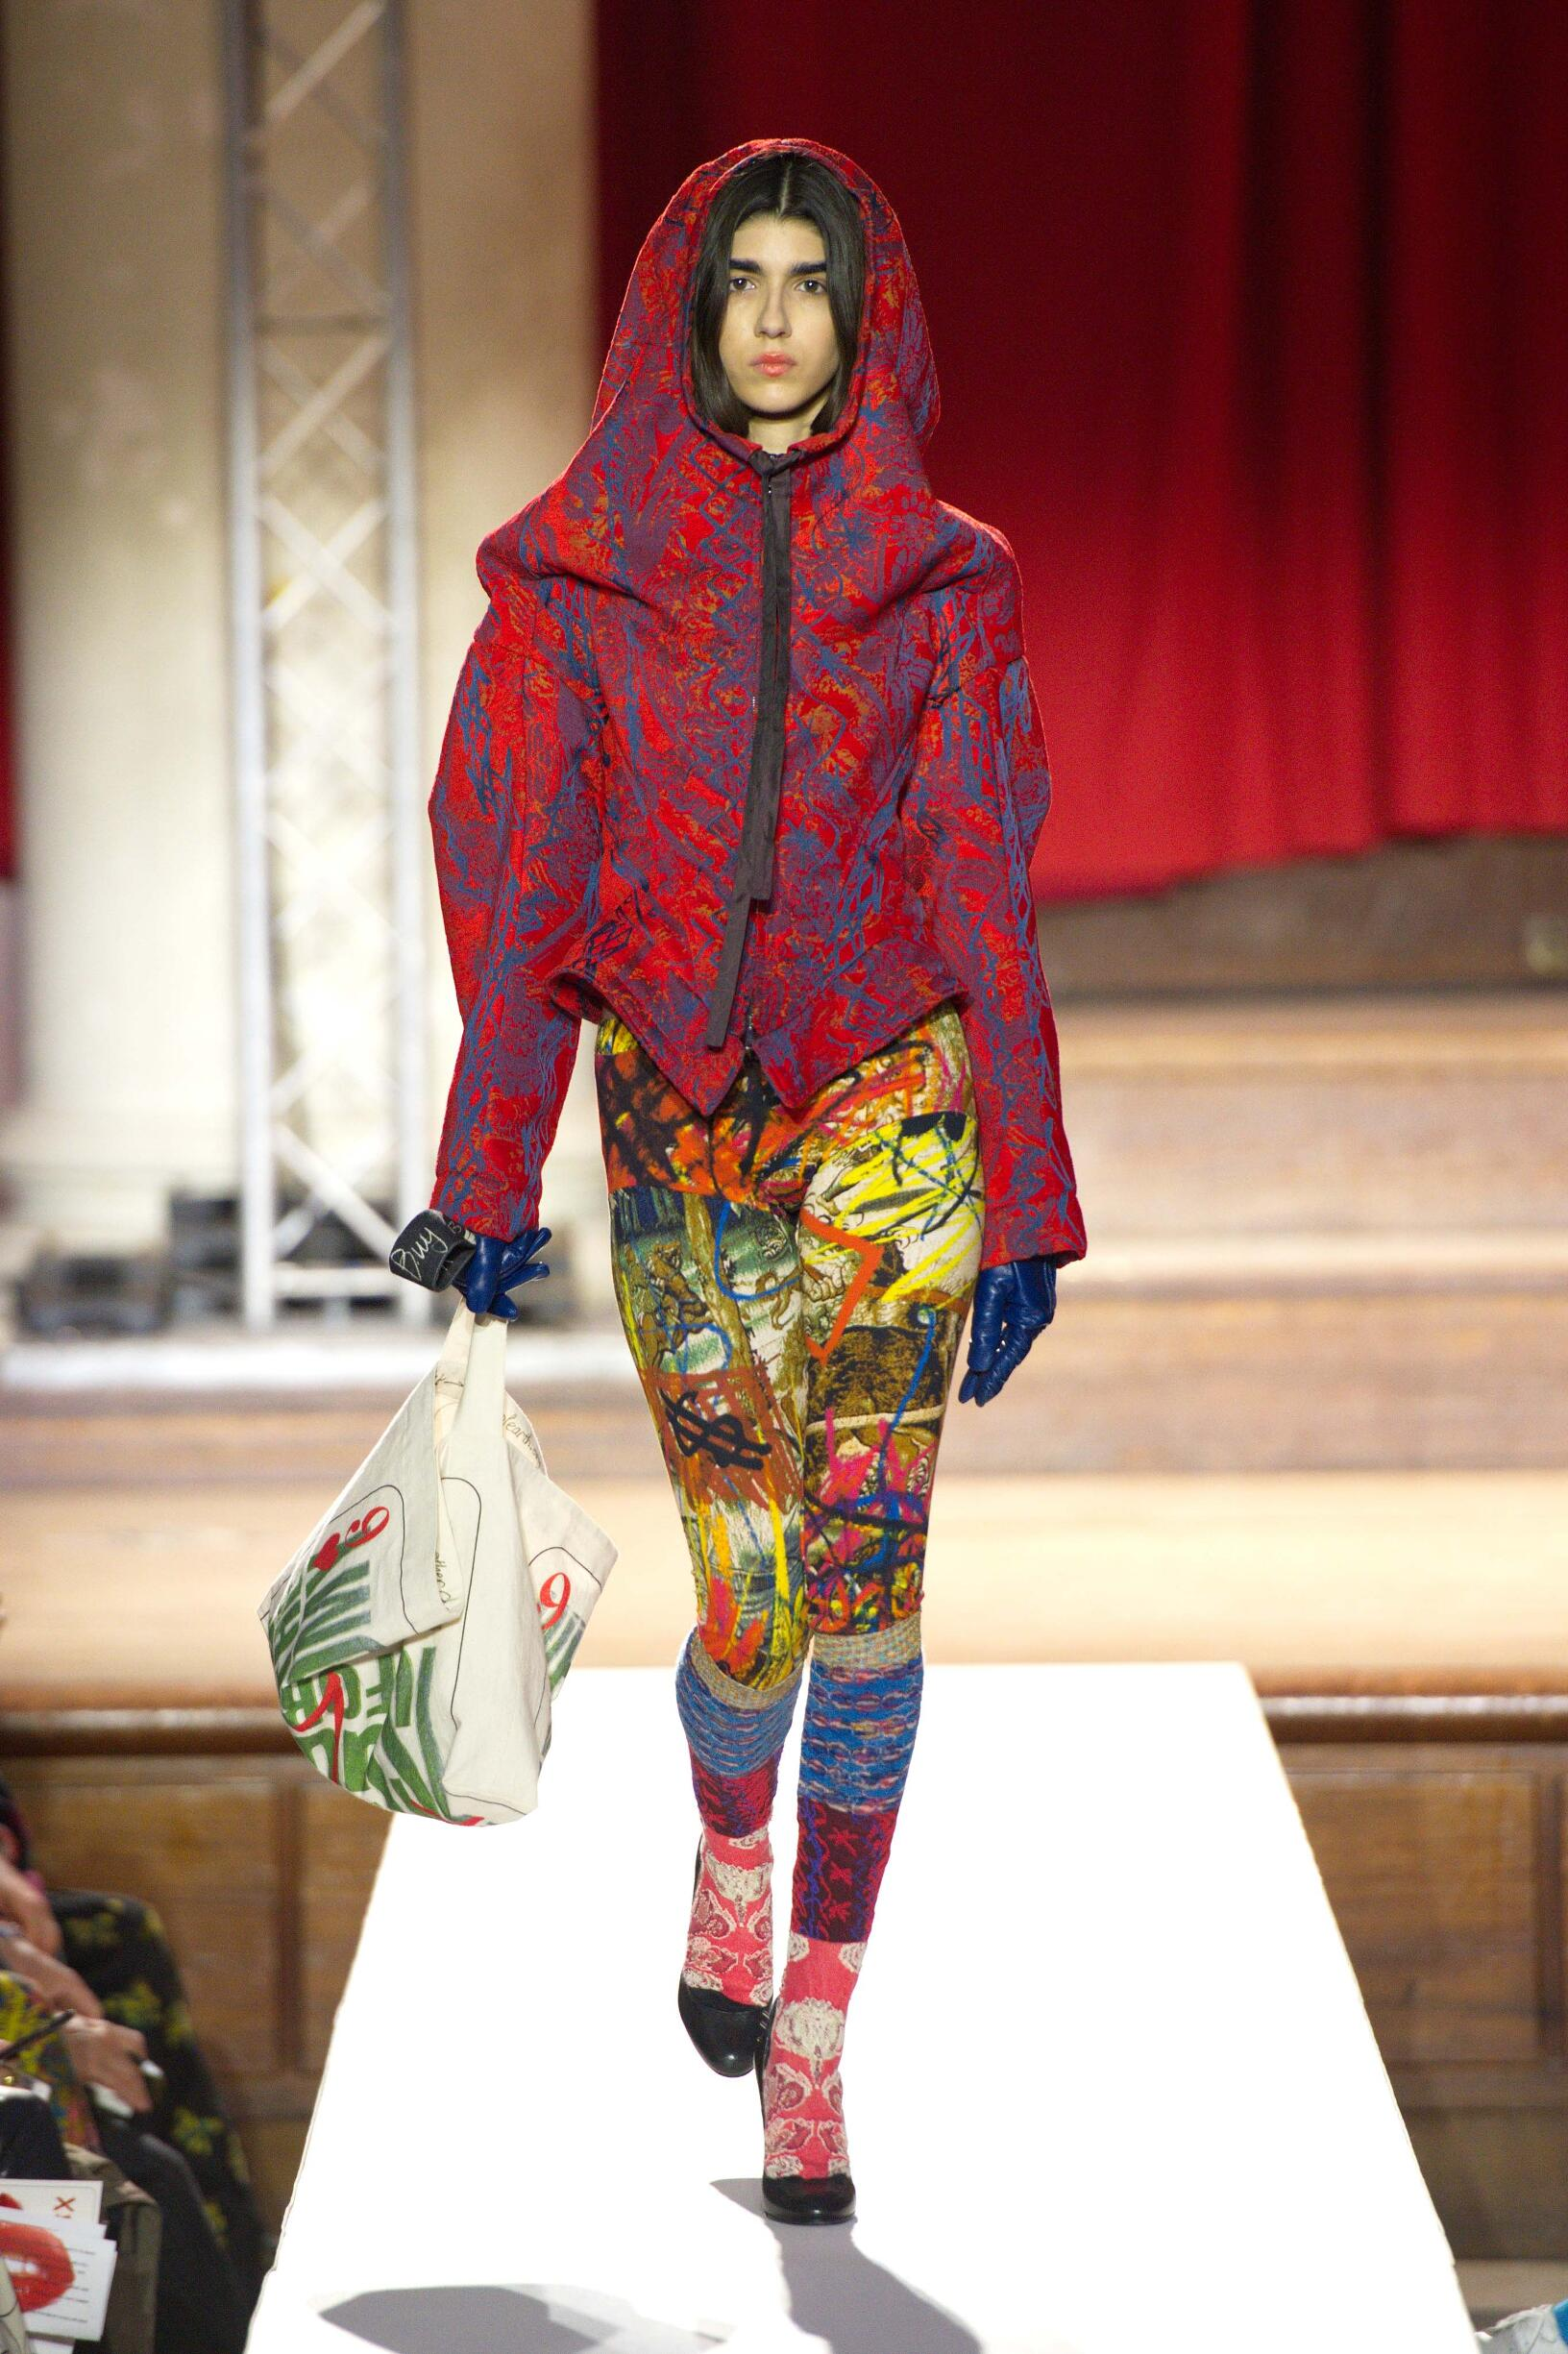 VIVIENNE WESTWOOD FALL WINTER 2019 COLLECTION The Skinny